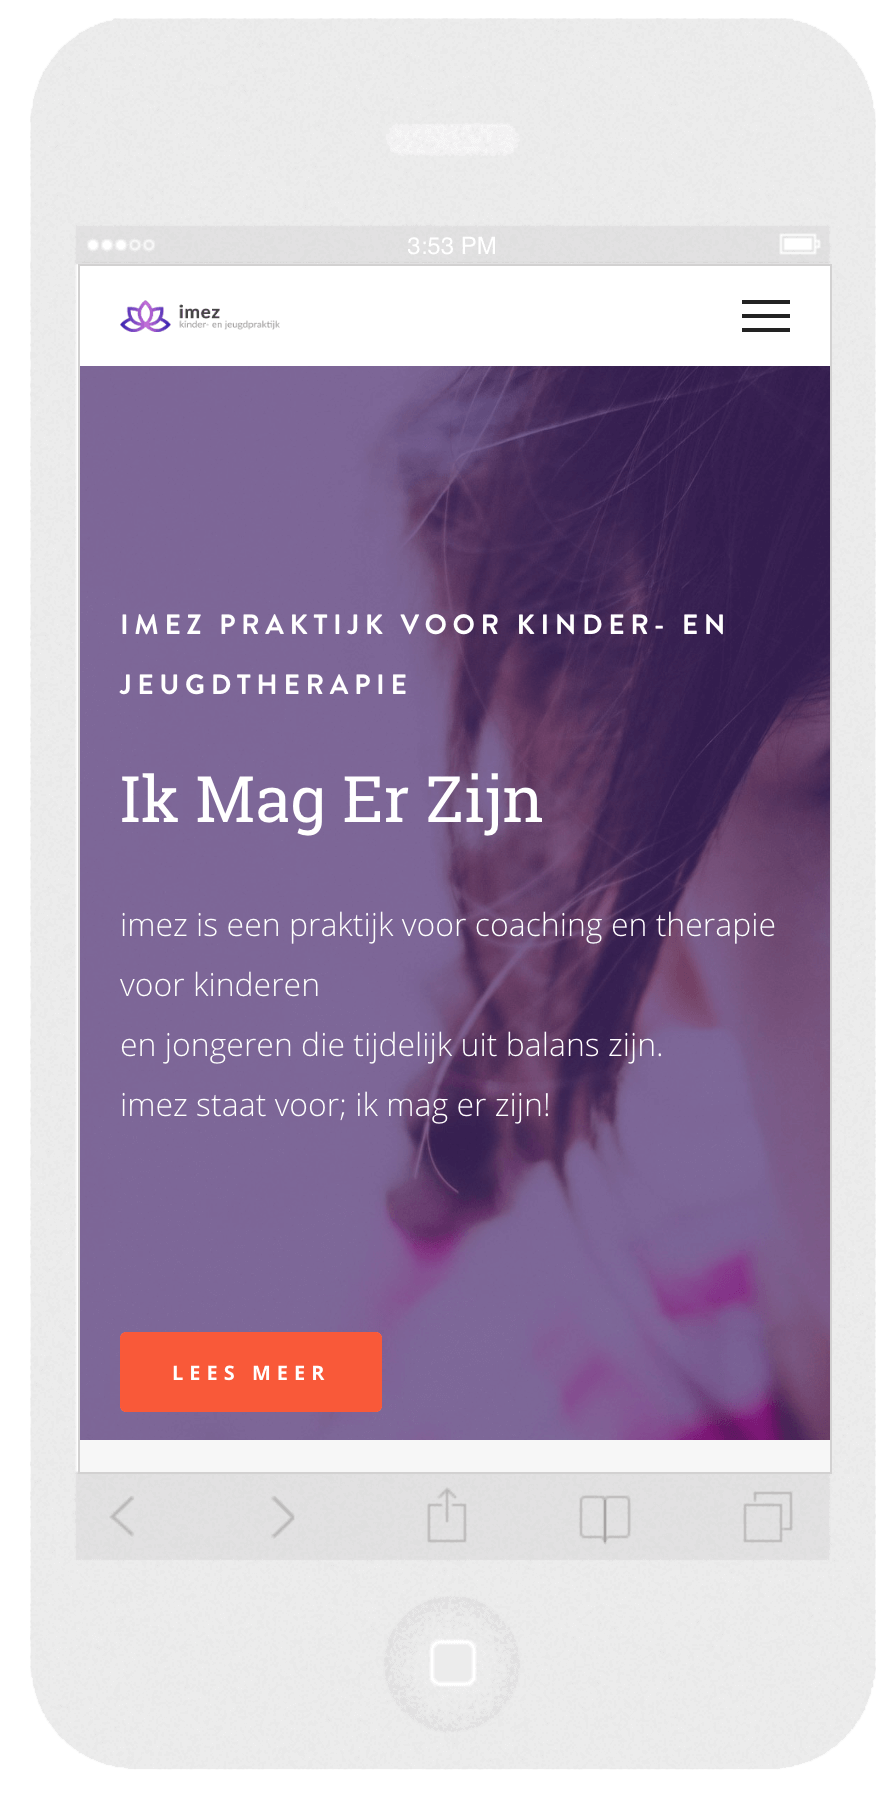 imez_website_iphone.png